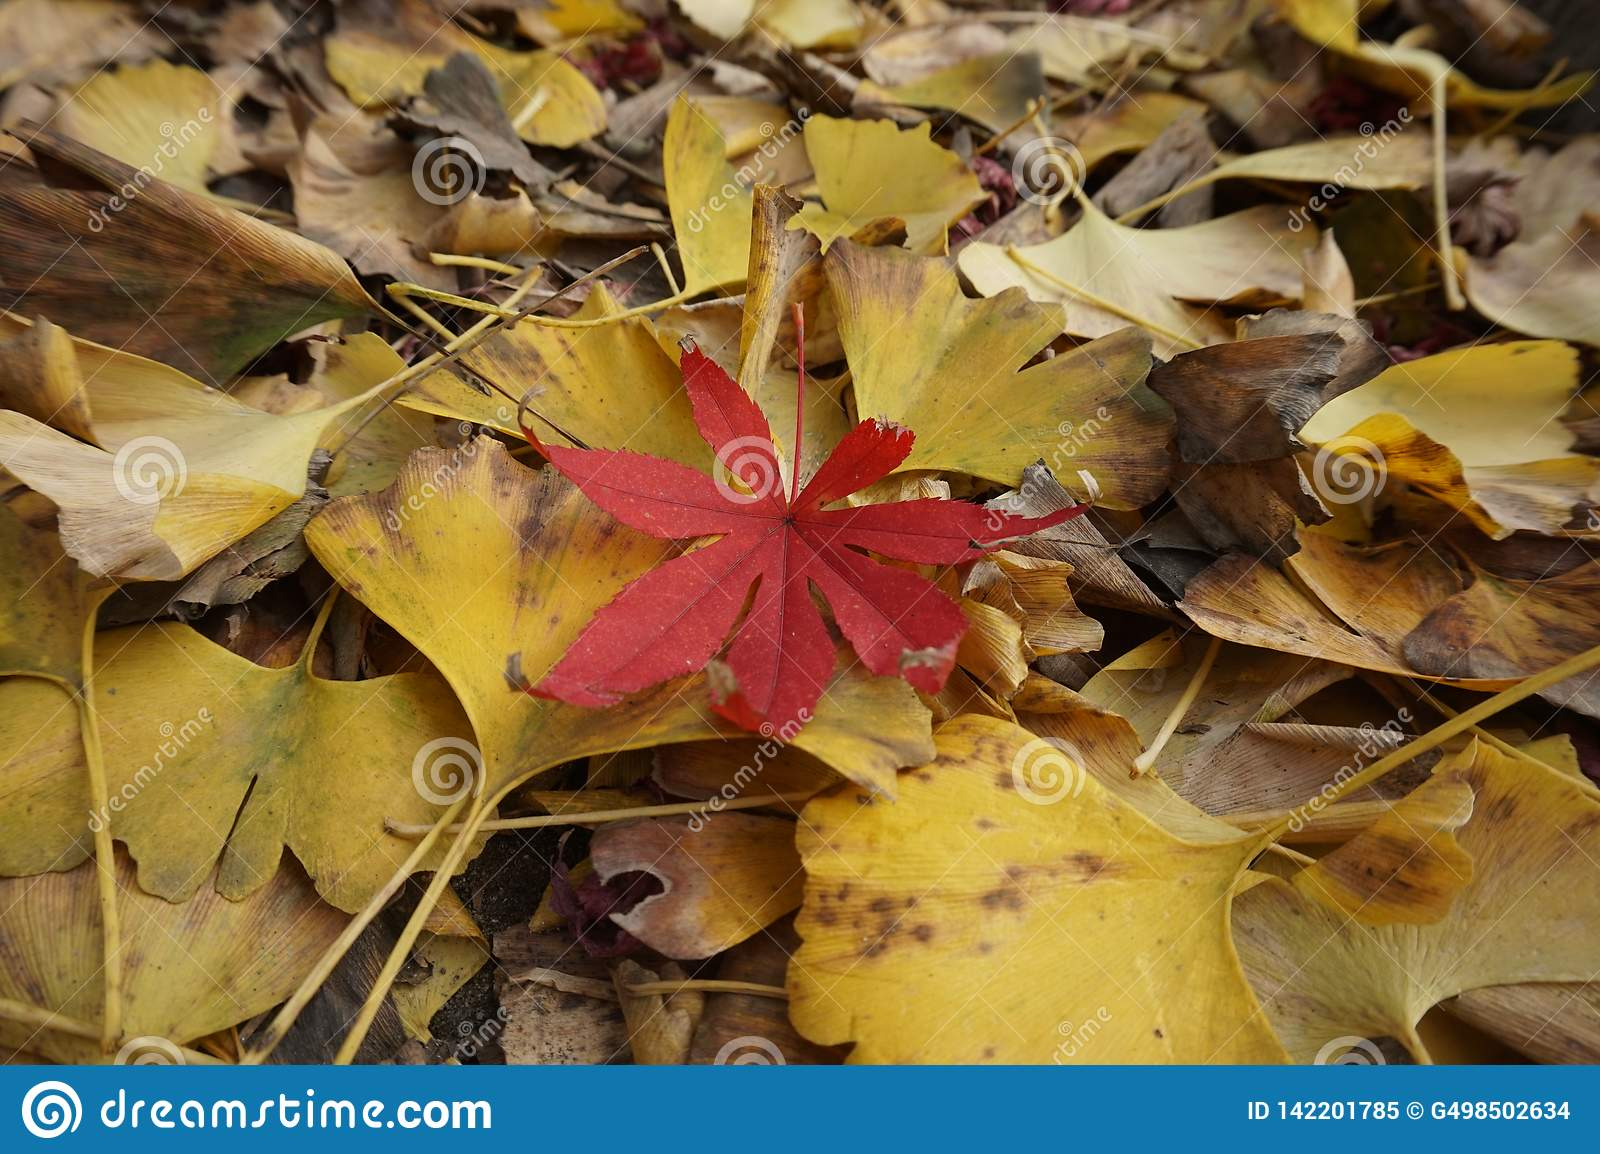 Ginkgo biloba and maple leaves, autumn scenery, withered branches and leaves a little red!